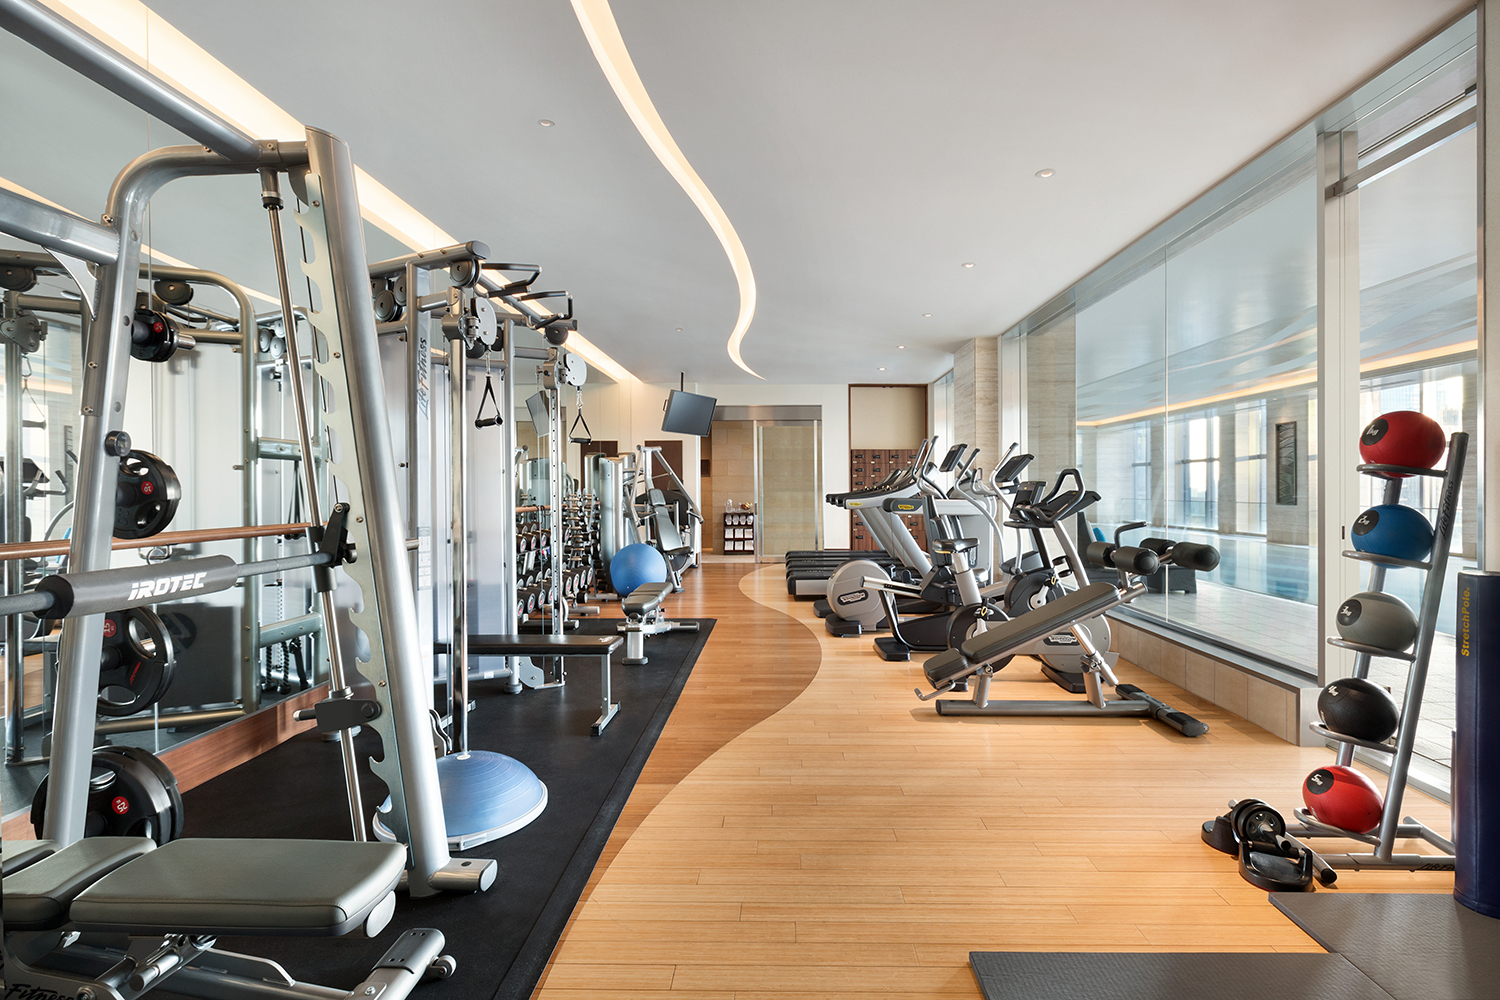 The hotel's fitness center.